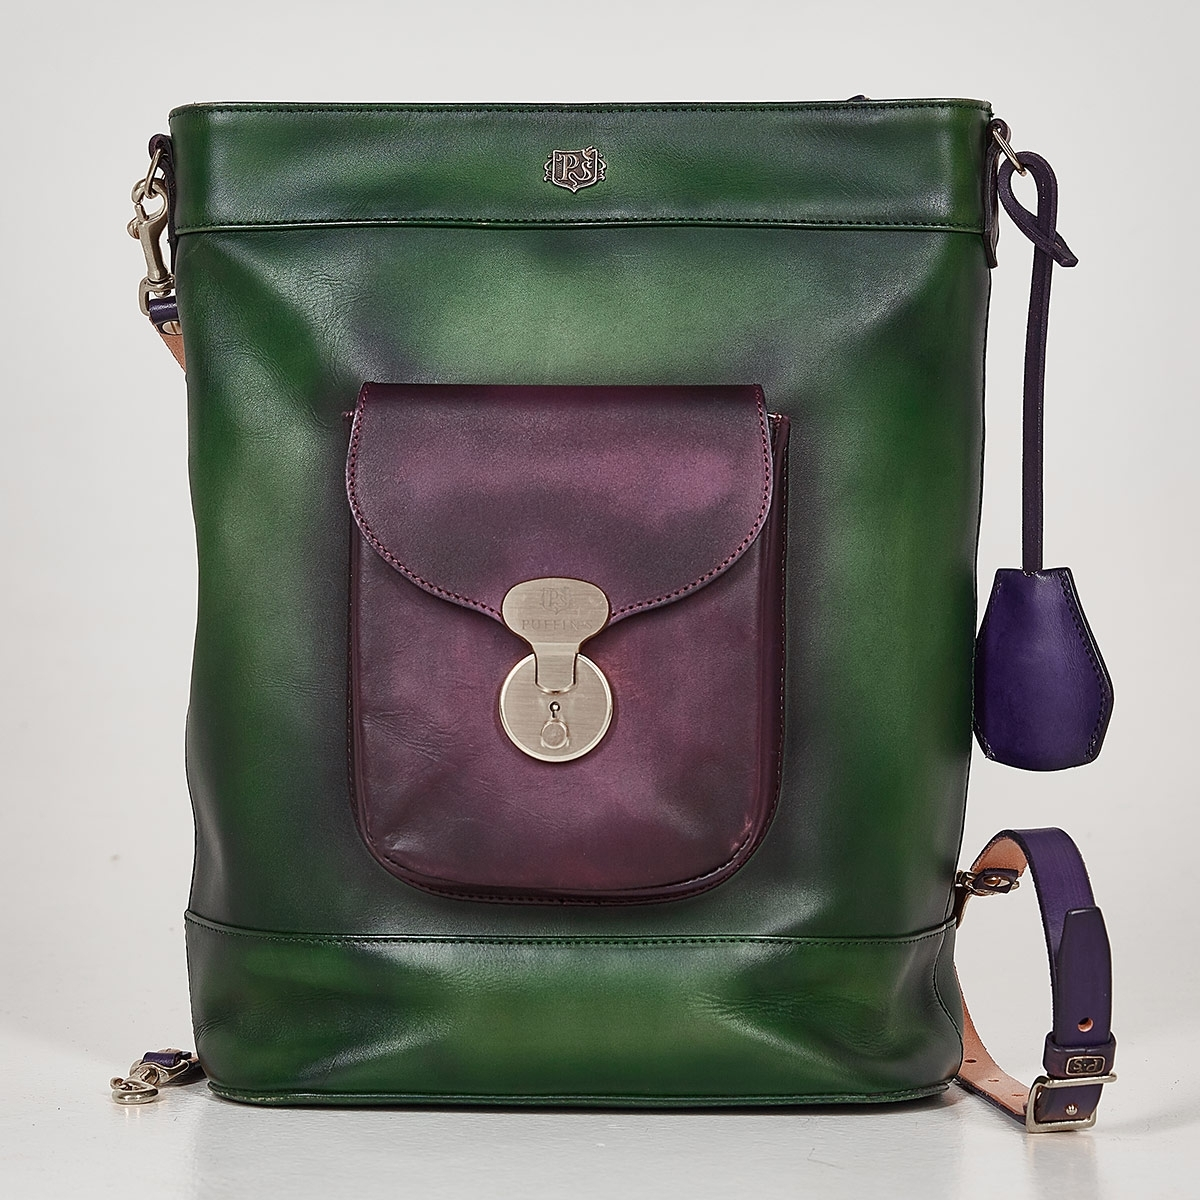 Backpack-tote transformer VOYAGE plum wine & grassy green